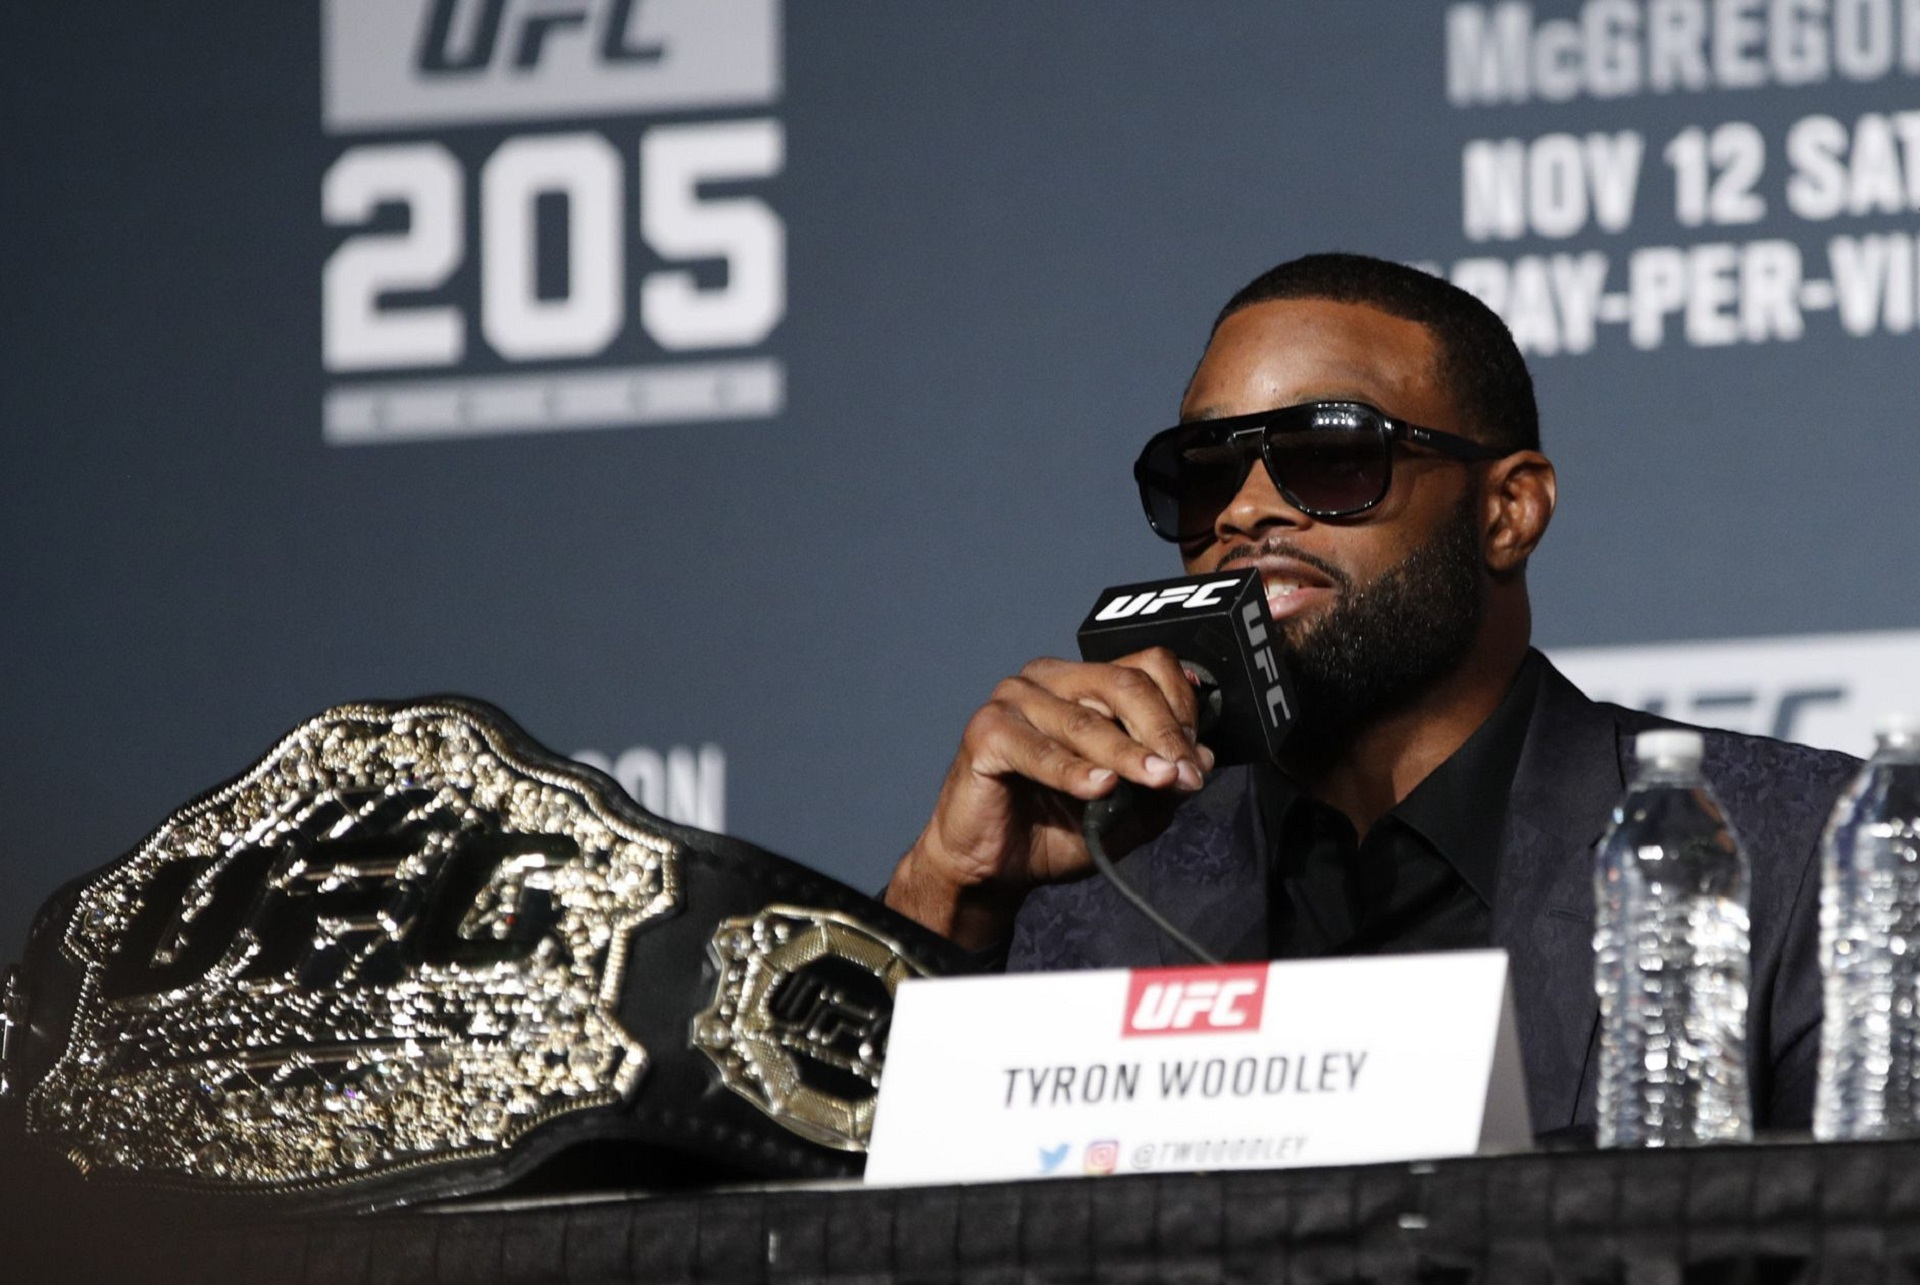 Tyron Woodley Wallpapers Hd